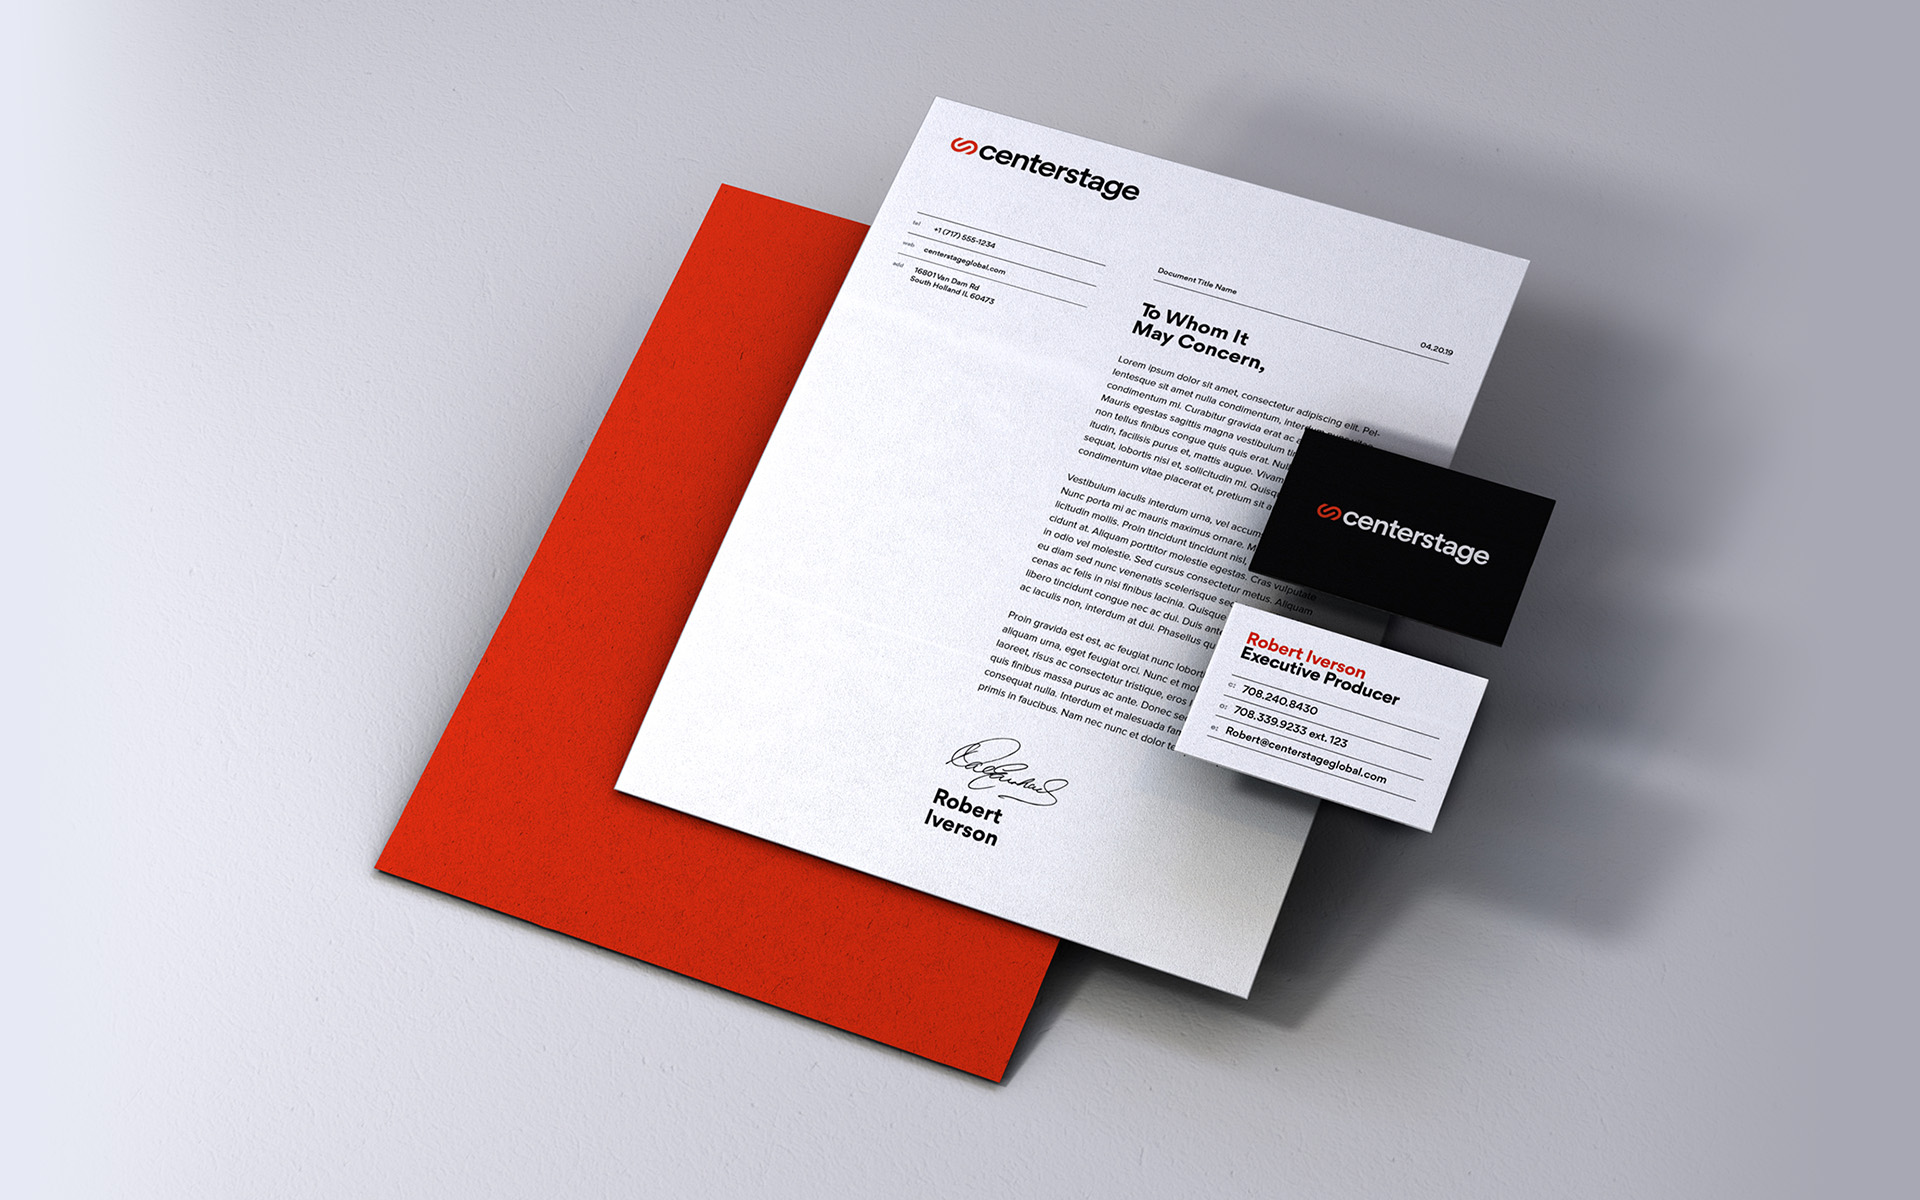 Centerstage collateral including business cards and letterhead design